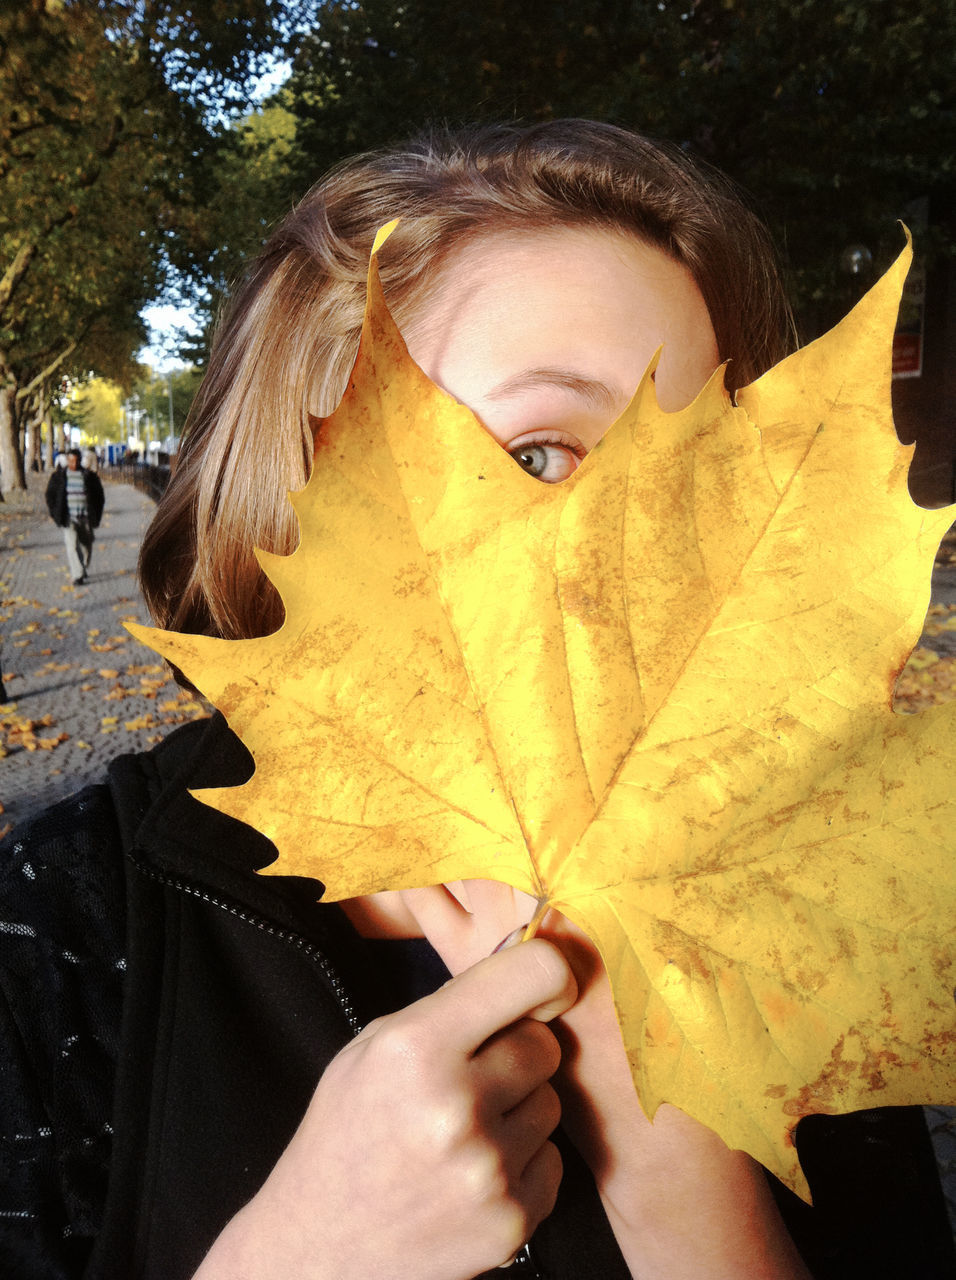 CROPPED IMAGE OF WOMAN WITH YELLOW LEAVES